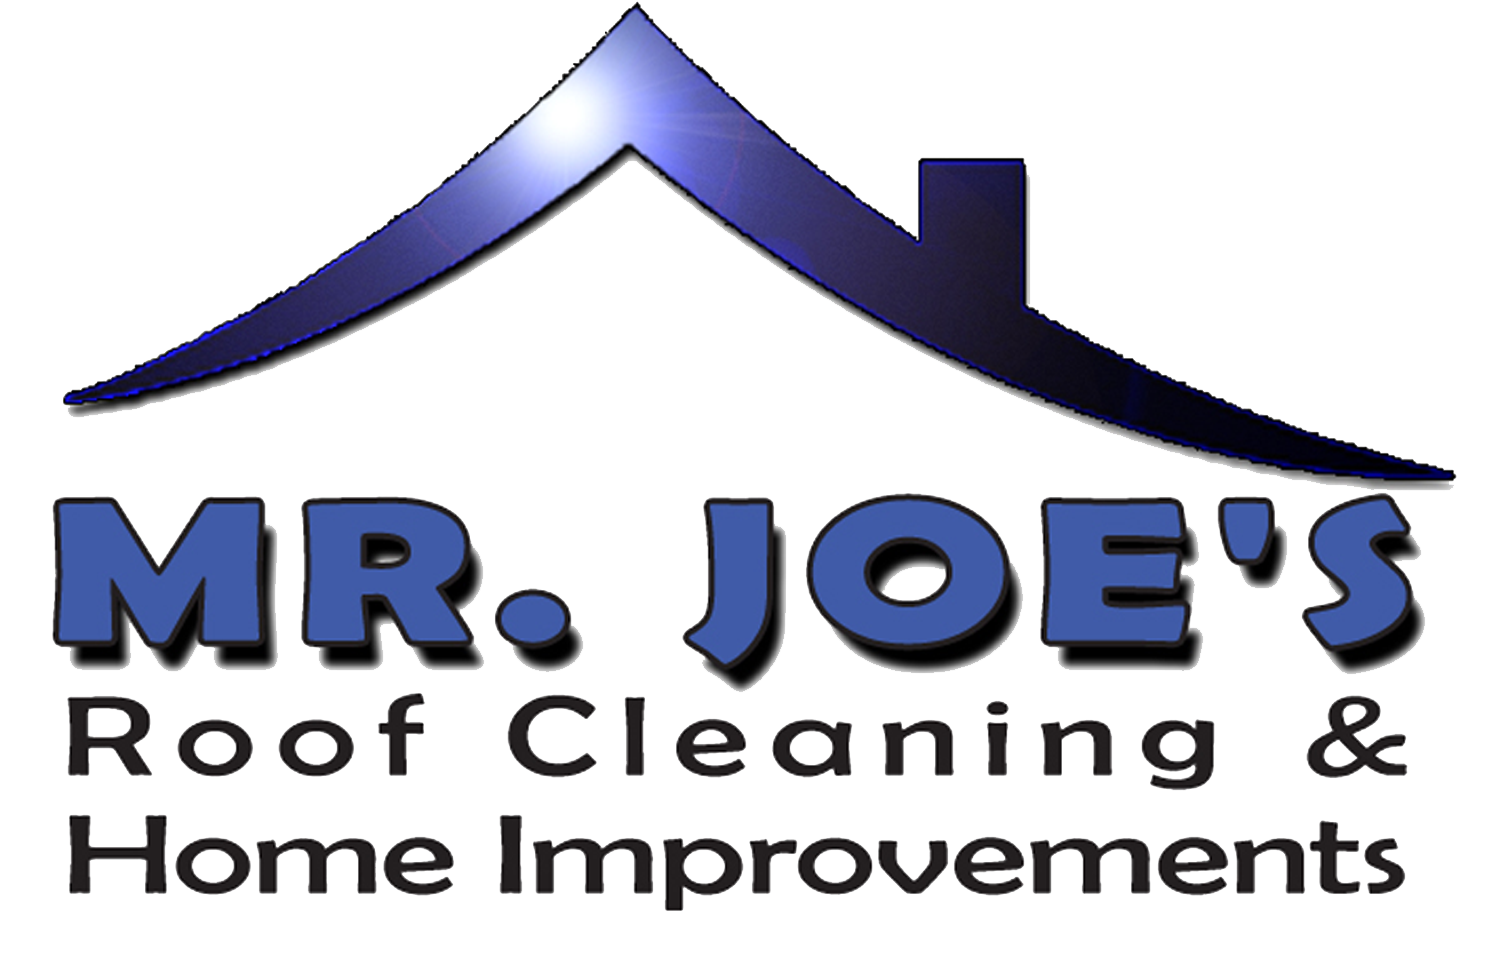 Mr. Joe's Roof Cleaning and Home Improvements